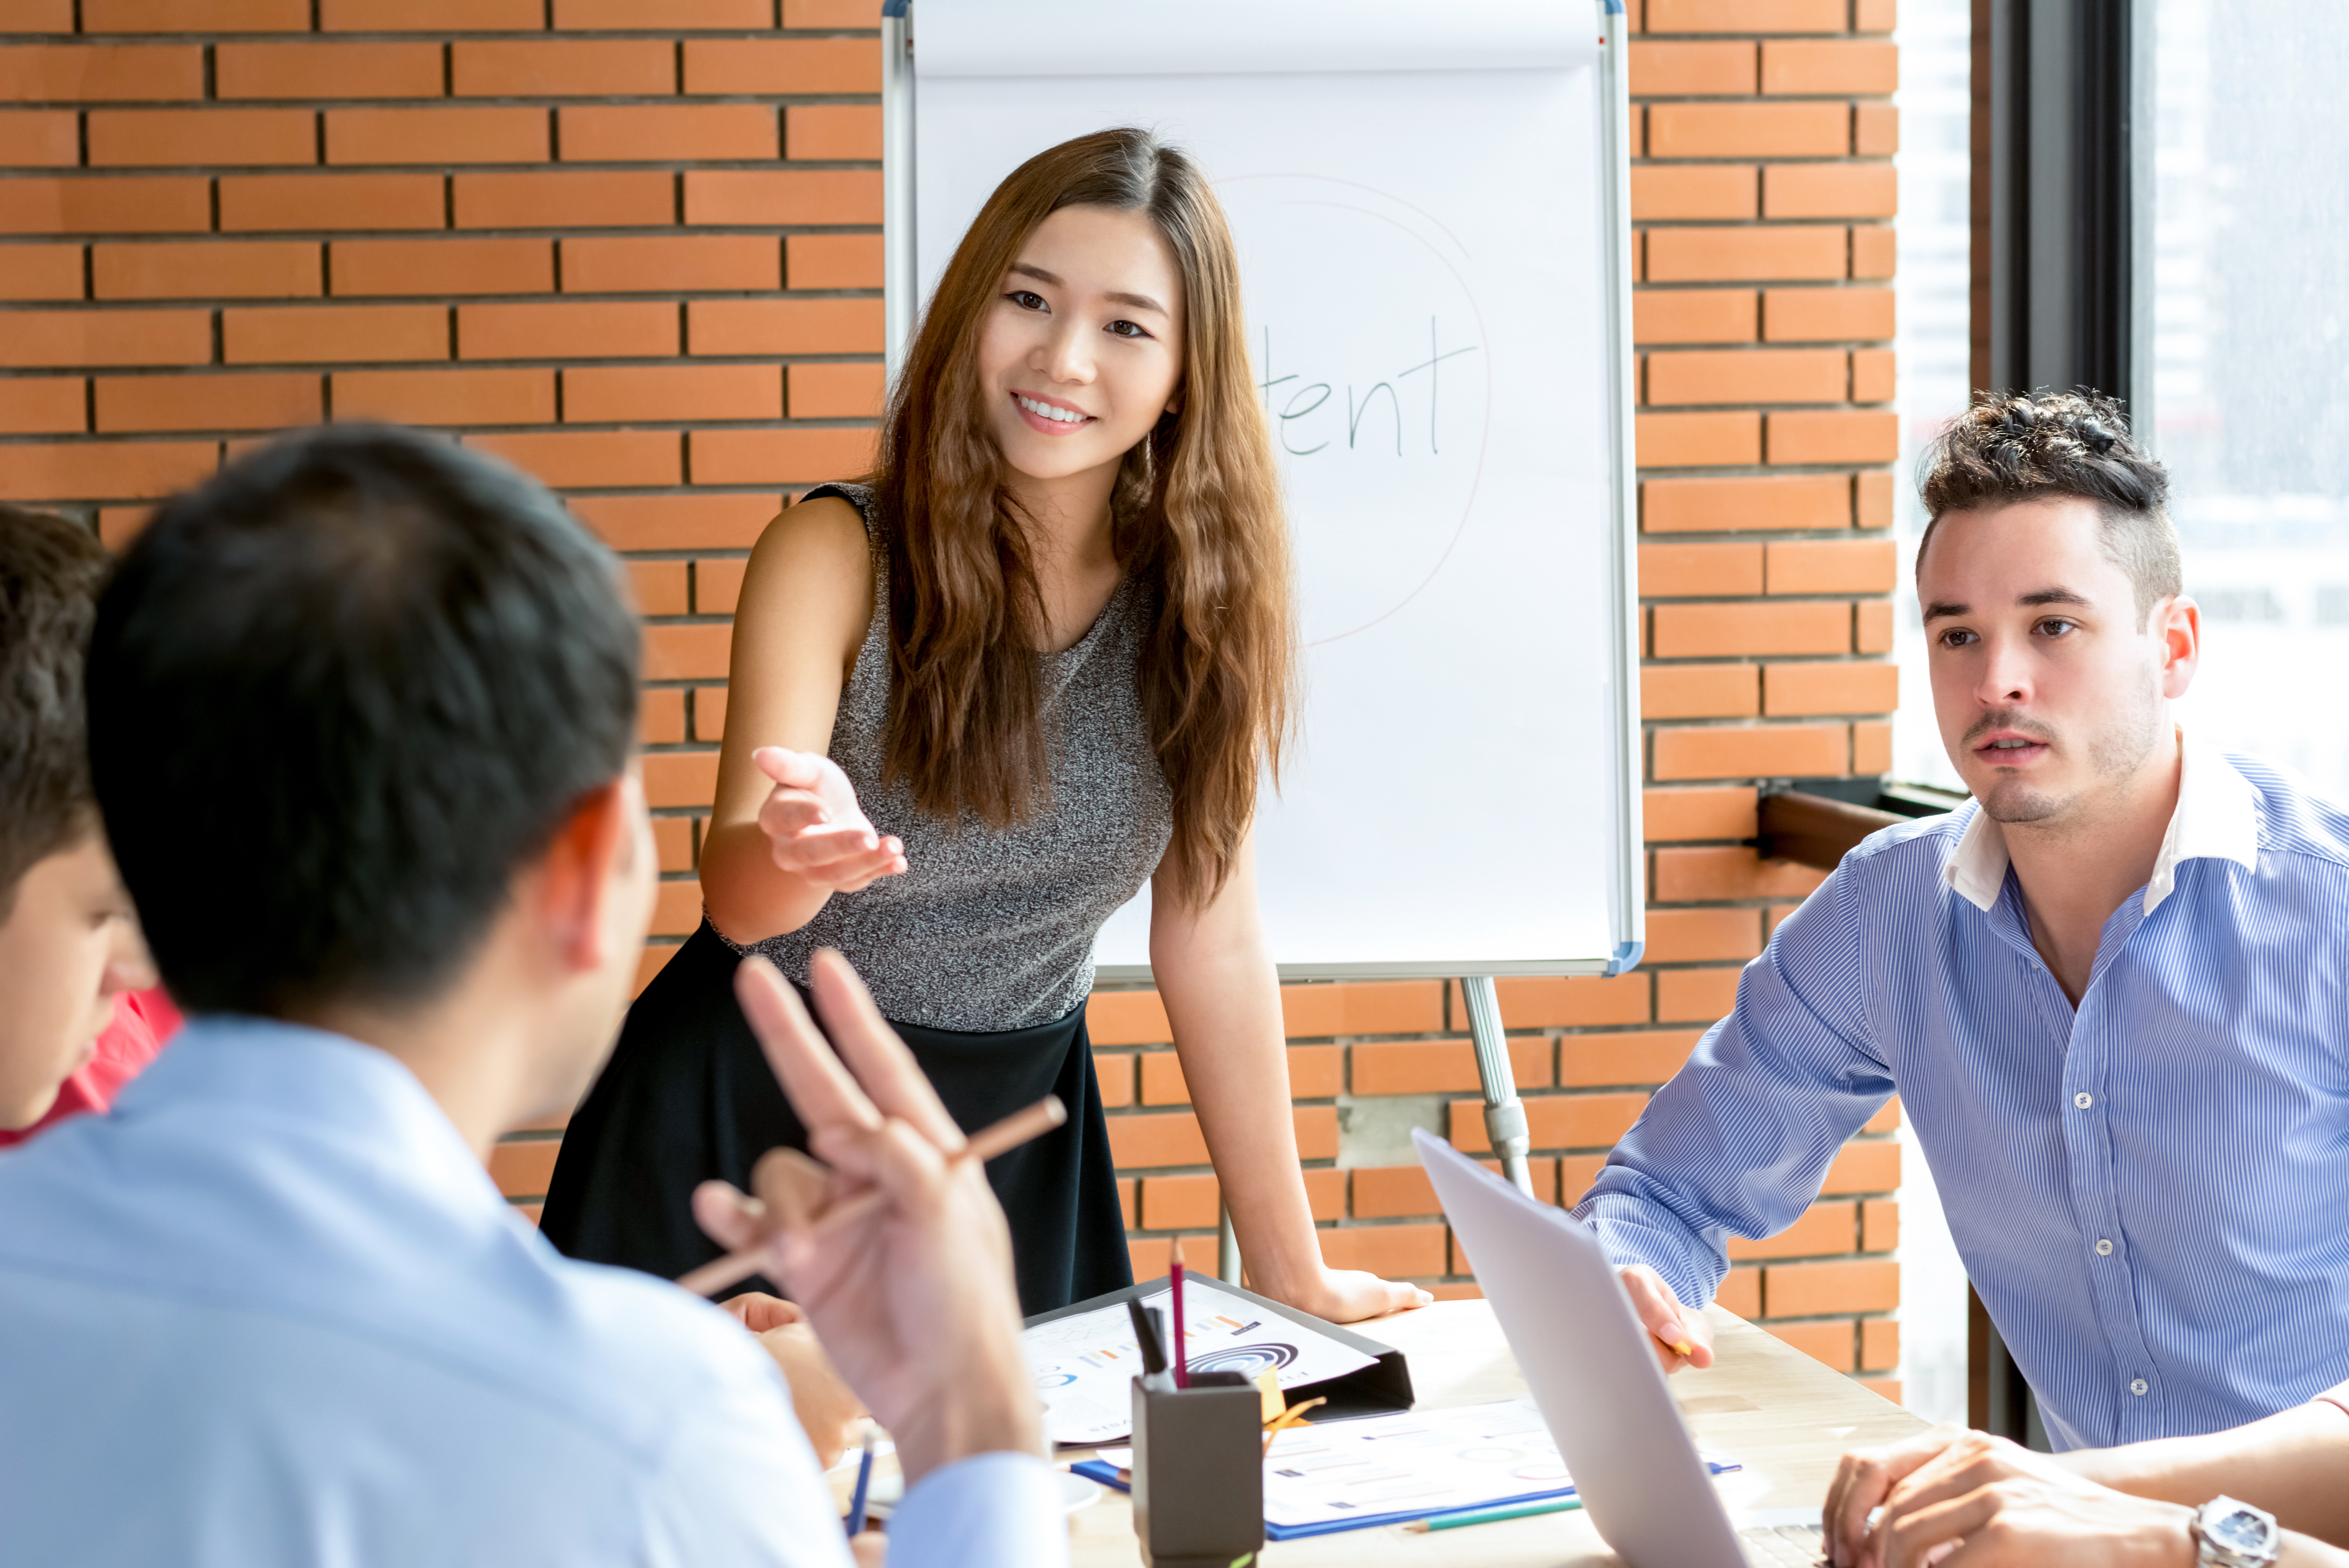 Communicate effectively with your team